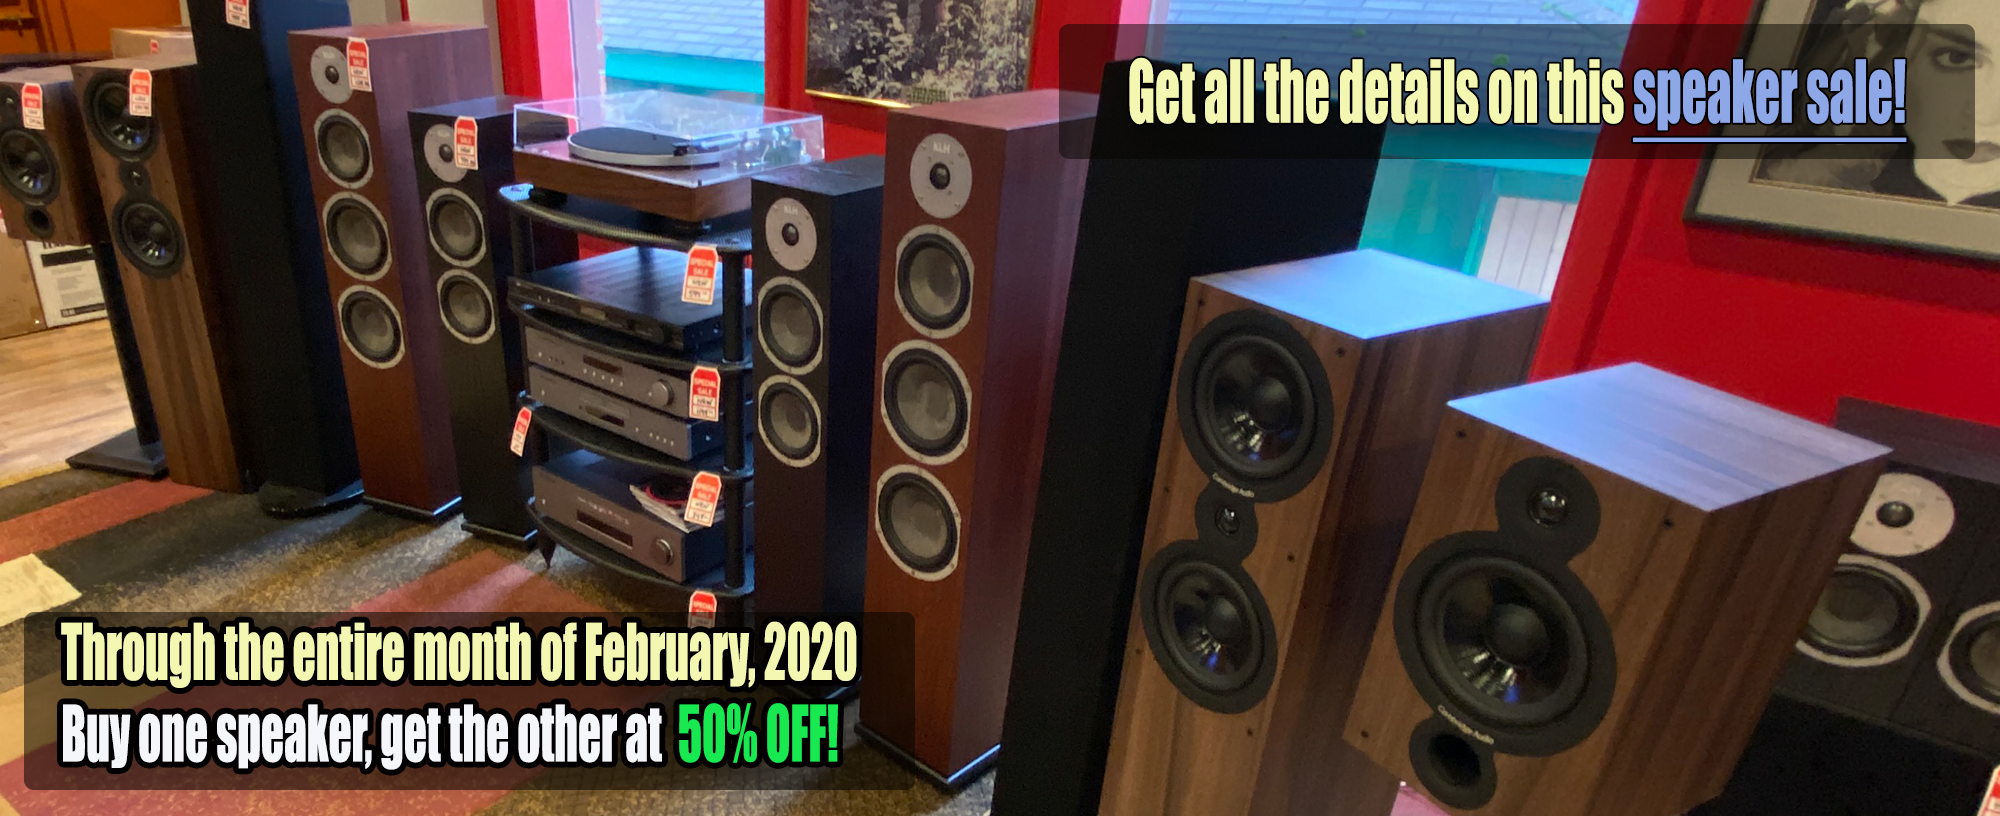 Cambridge Audio, KLH, Harbeth, and GoldenEar Technology Speakers for sale at 3003 Babcock Blvd.